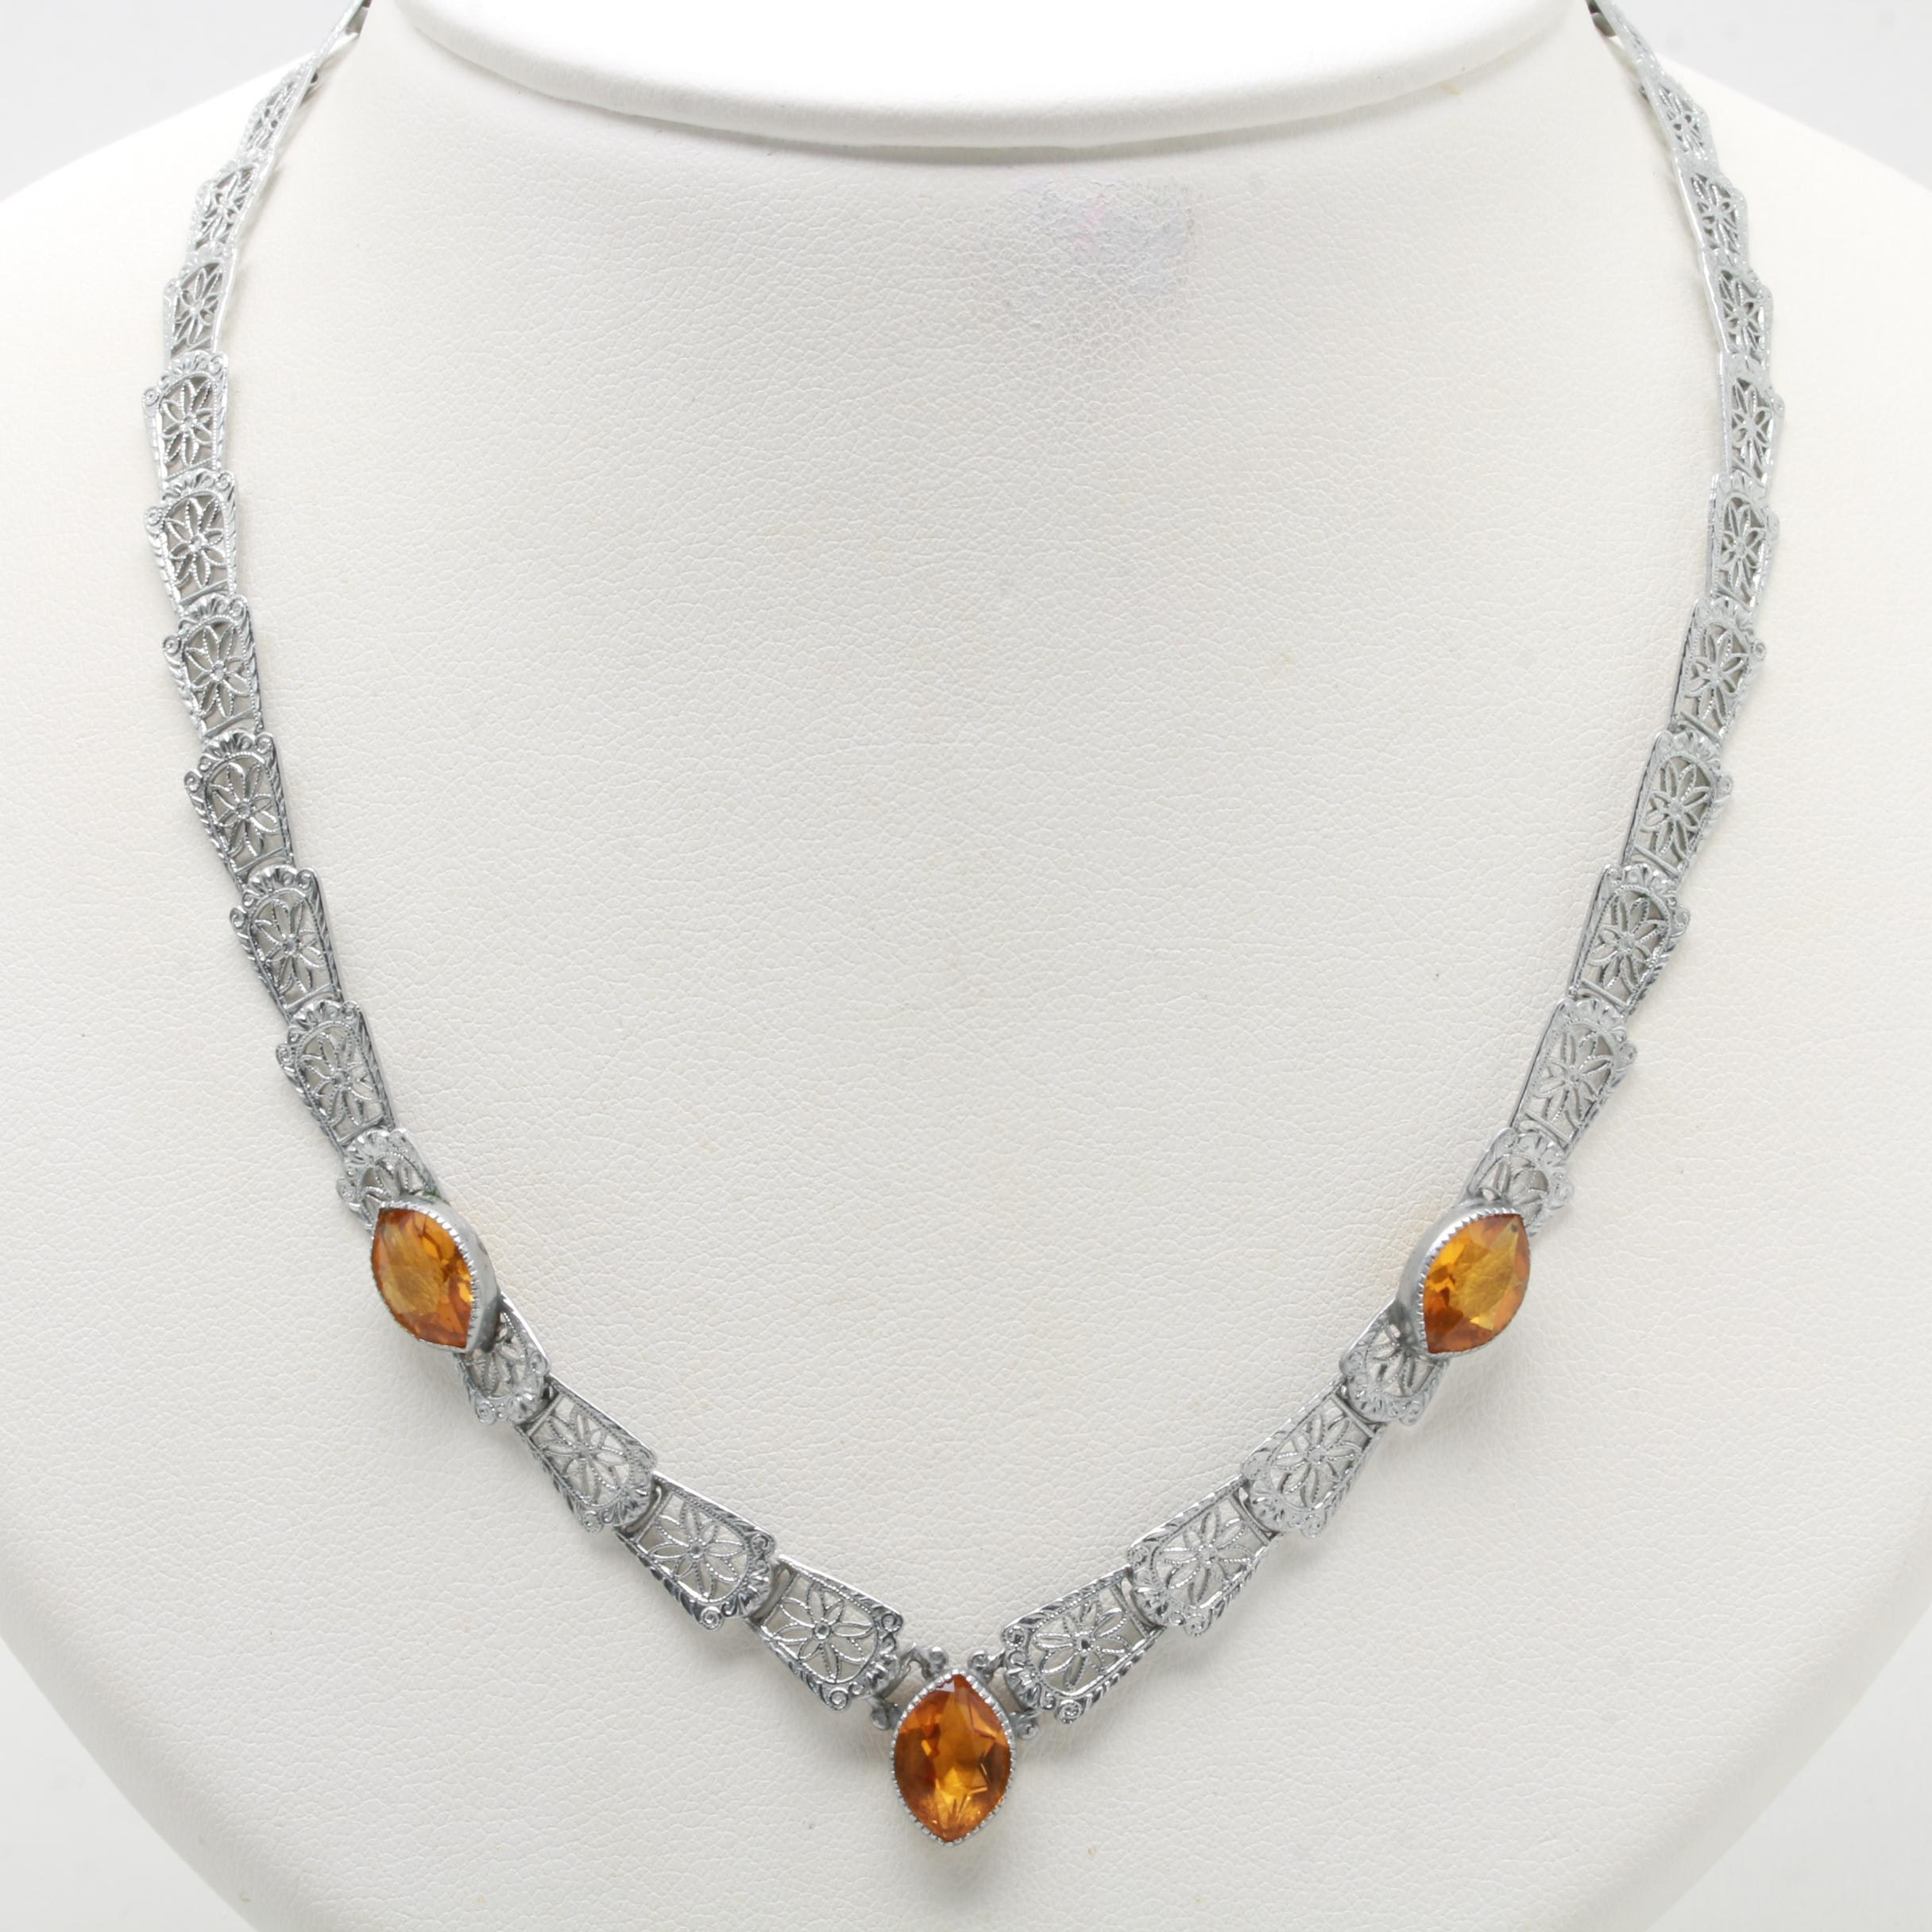 Art Deco Silver Tone Amber Colored Glass Necklace